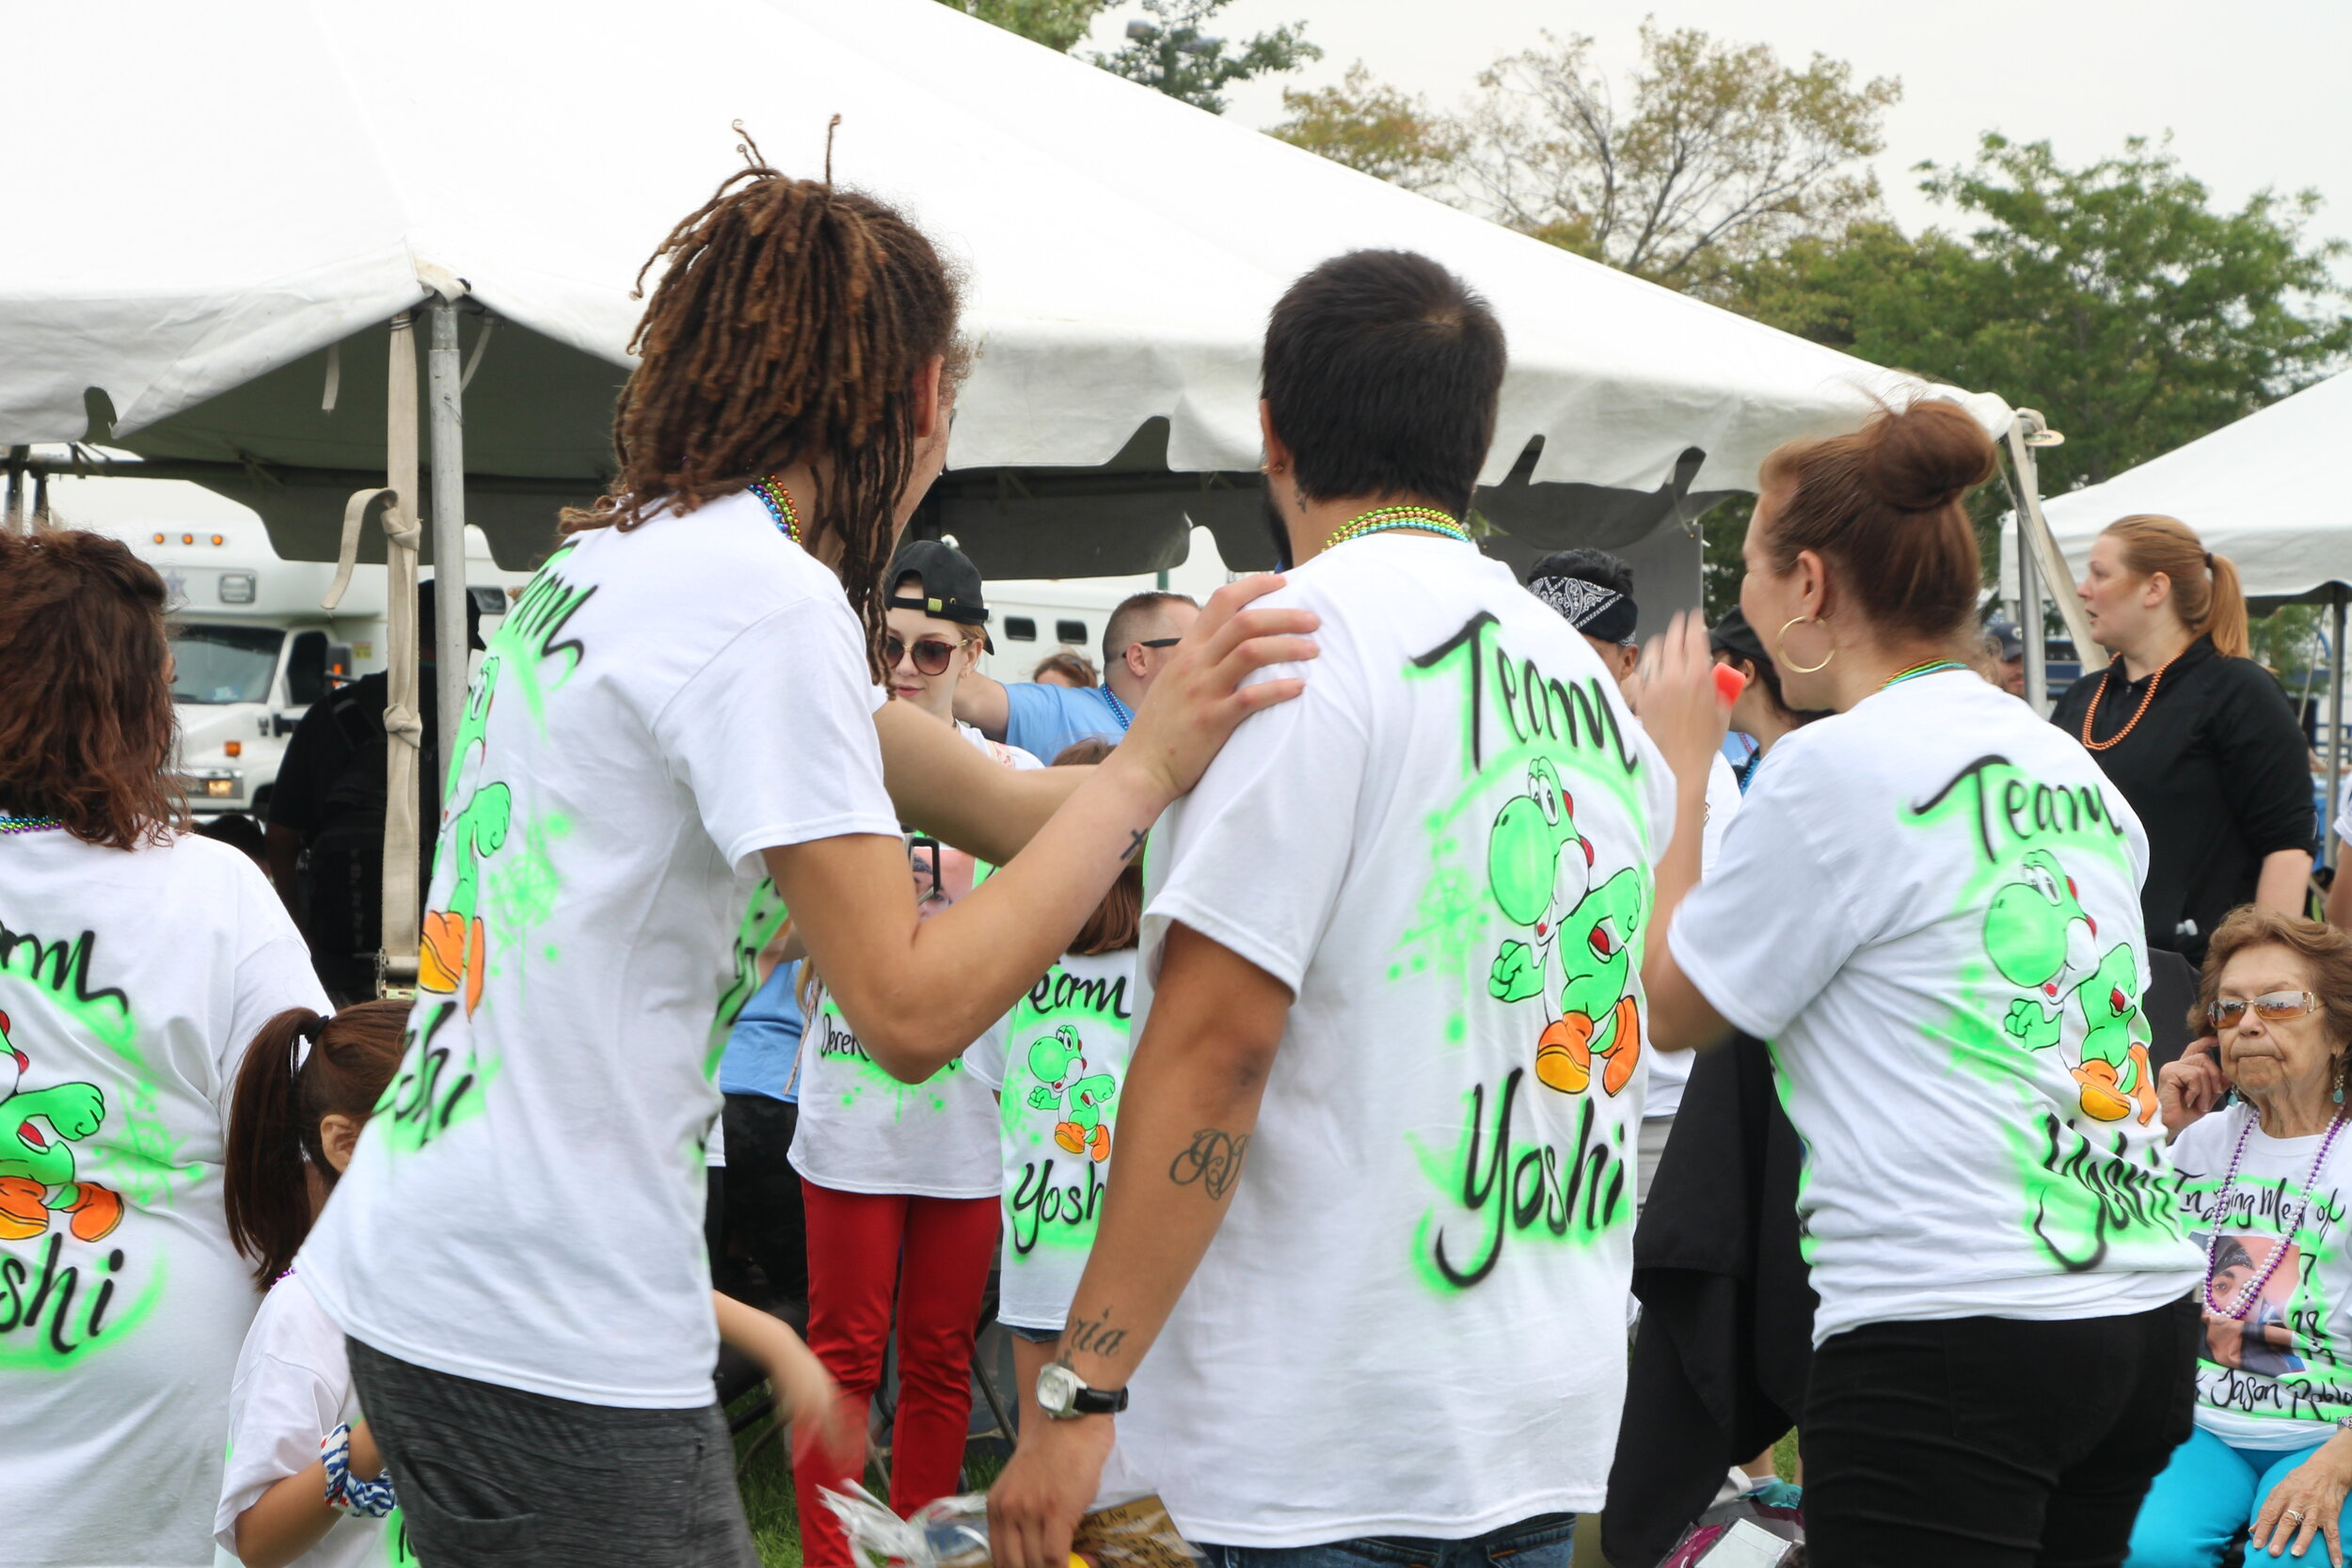 Team Yoshi met up to honor a lost loved one in matching customized T-Shirts.